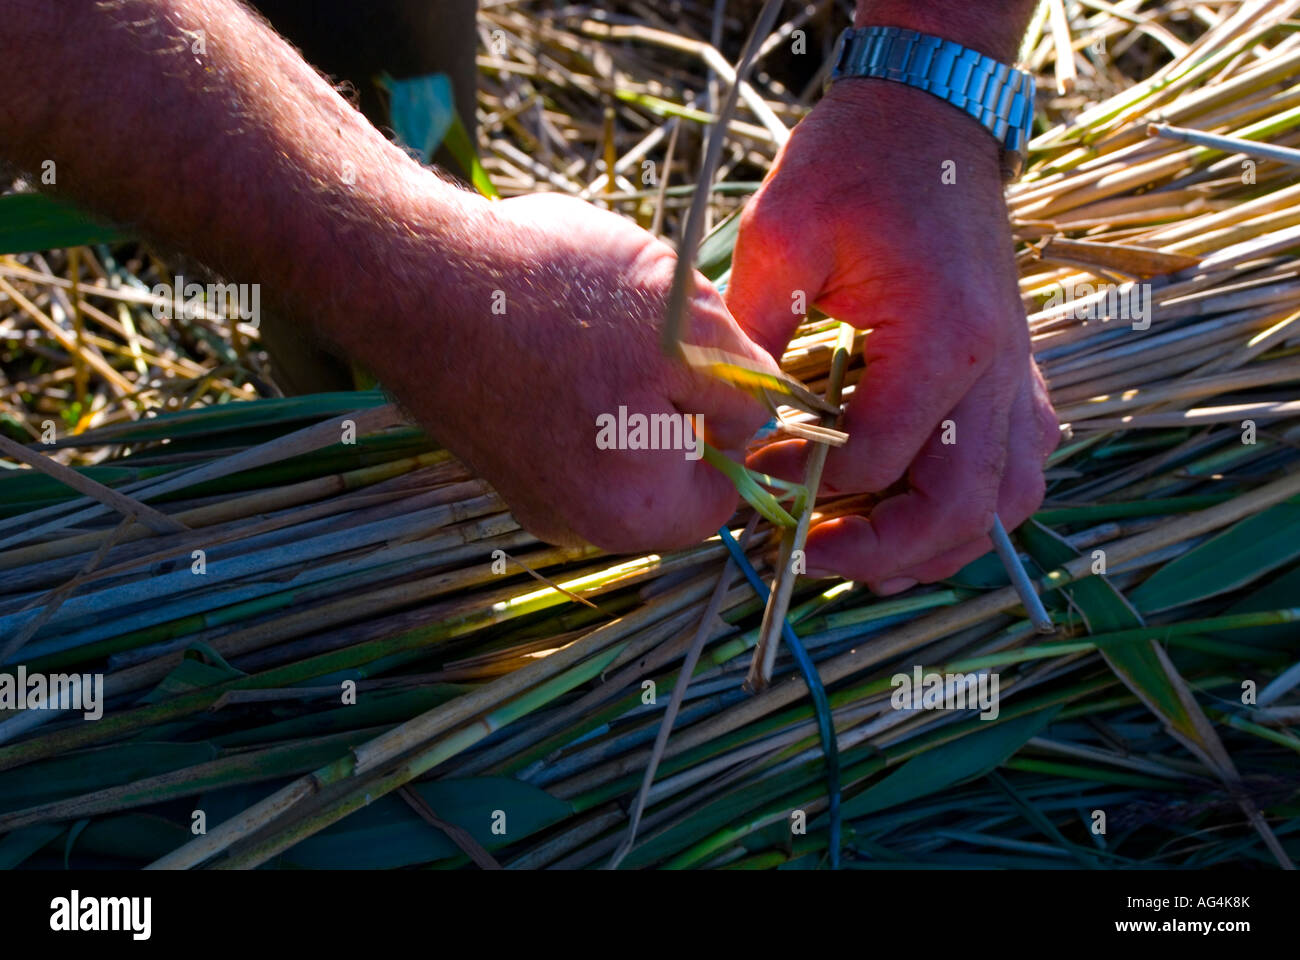 County Donegal Ireland Tying up reeds to be used in thatching - Stock Image